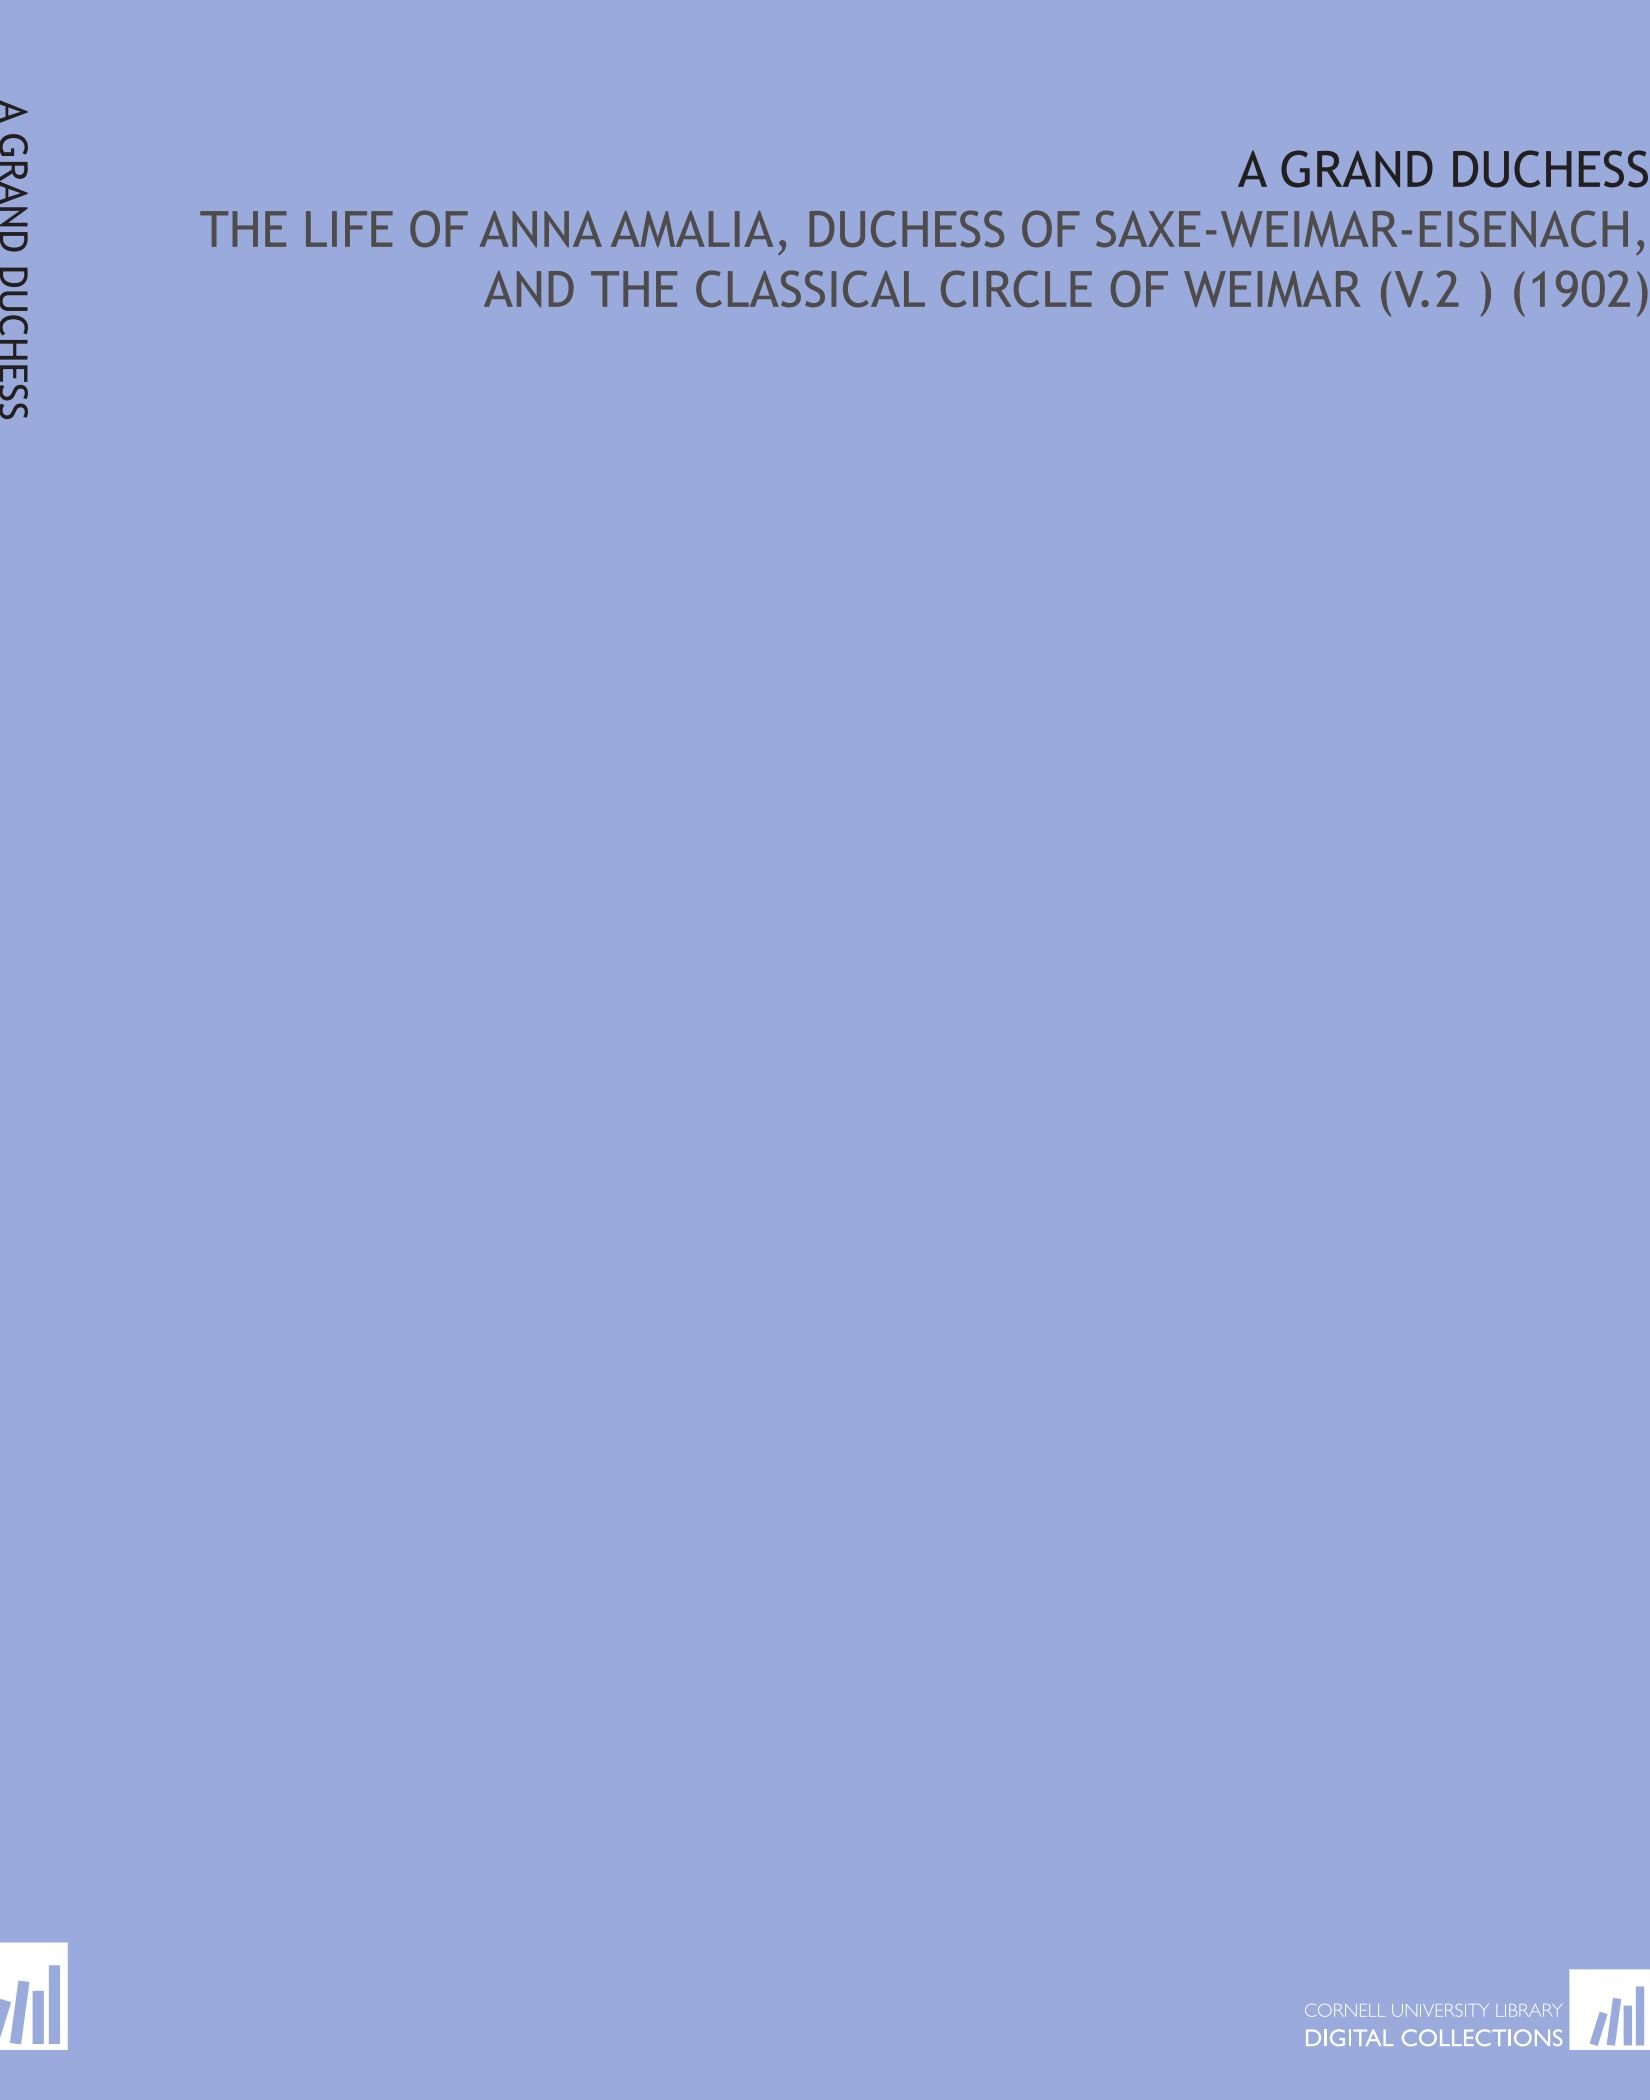 A Grand Duchess: The Life of Anna Amalia, Duchess of Saxe-Weimar-Eisenach, and the Classical Circle of Weimar (V.2 ) (1902) pdf epub